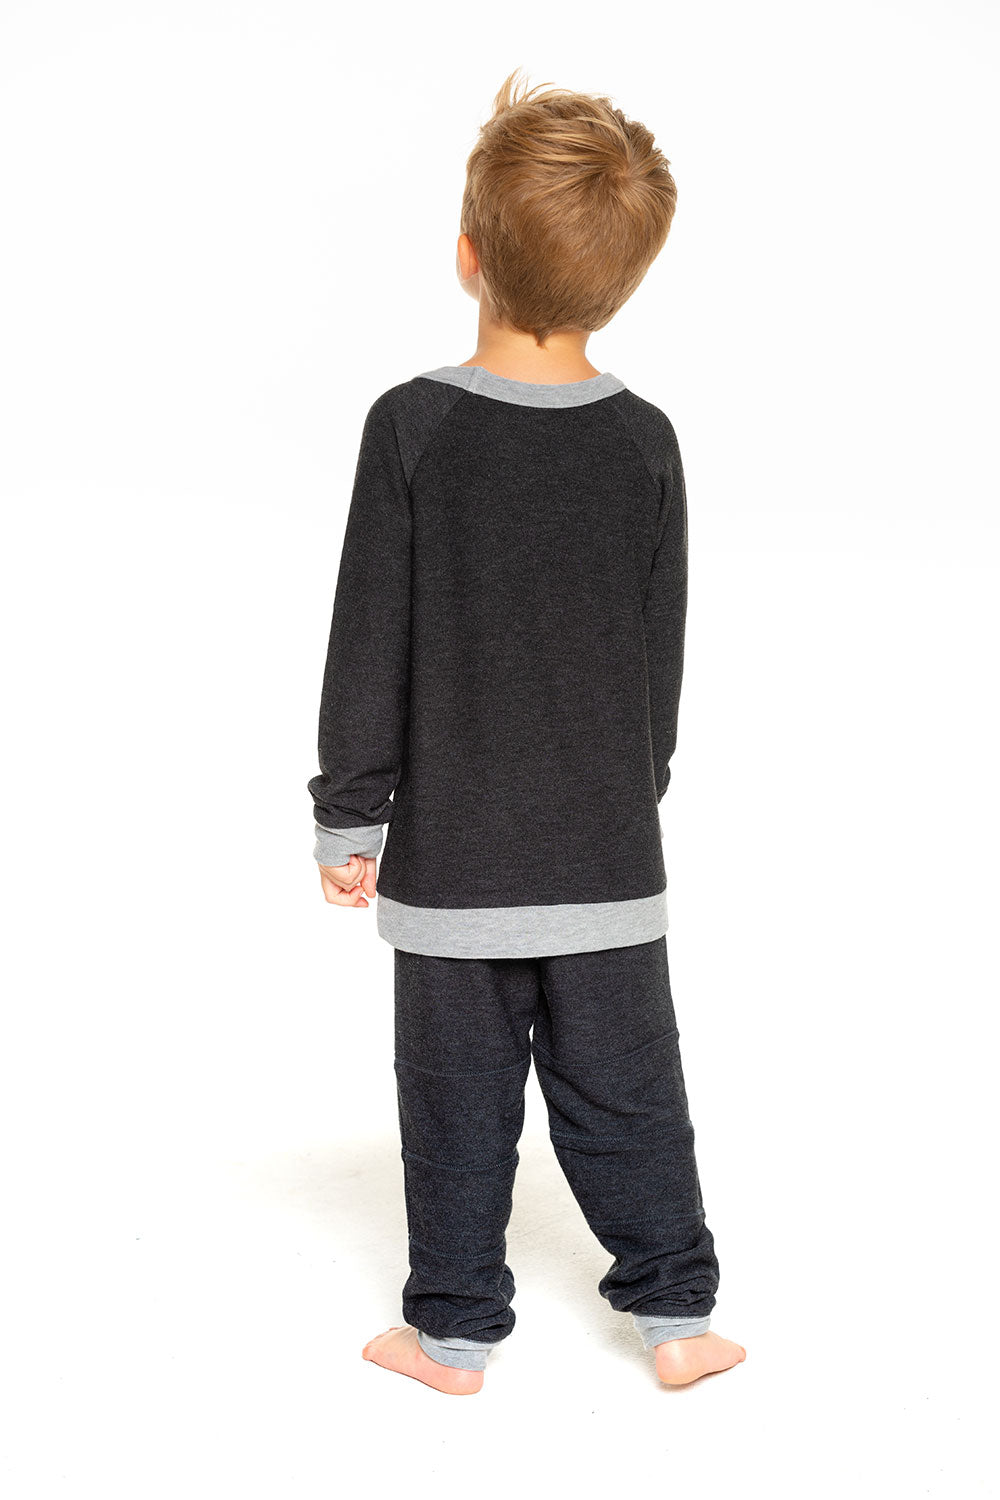 Boys Cozy Knit Long Sleeve Contrast Raglan Pullover with Pocket in Black BOYS chaserbrand4.myshopify.com